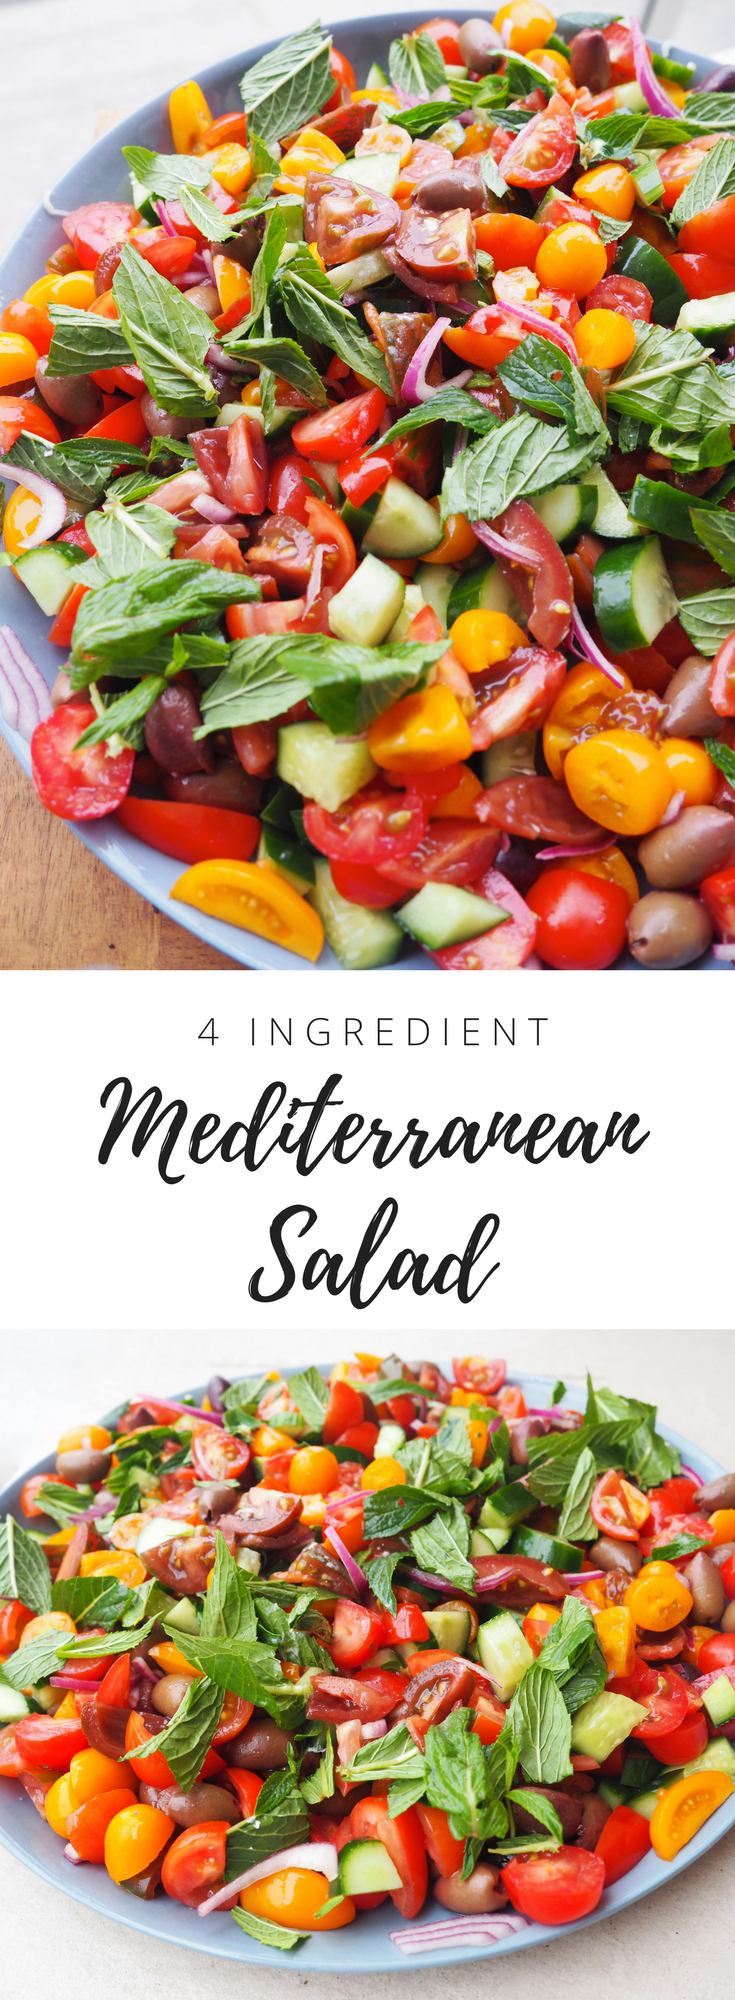 Best Mediterranean Salad Healthy recipe - Lyndi Cohen